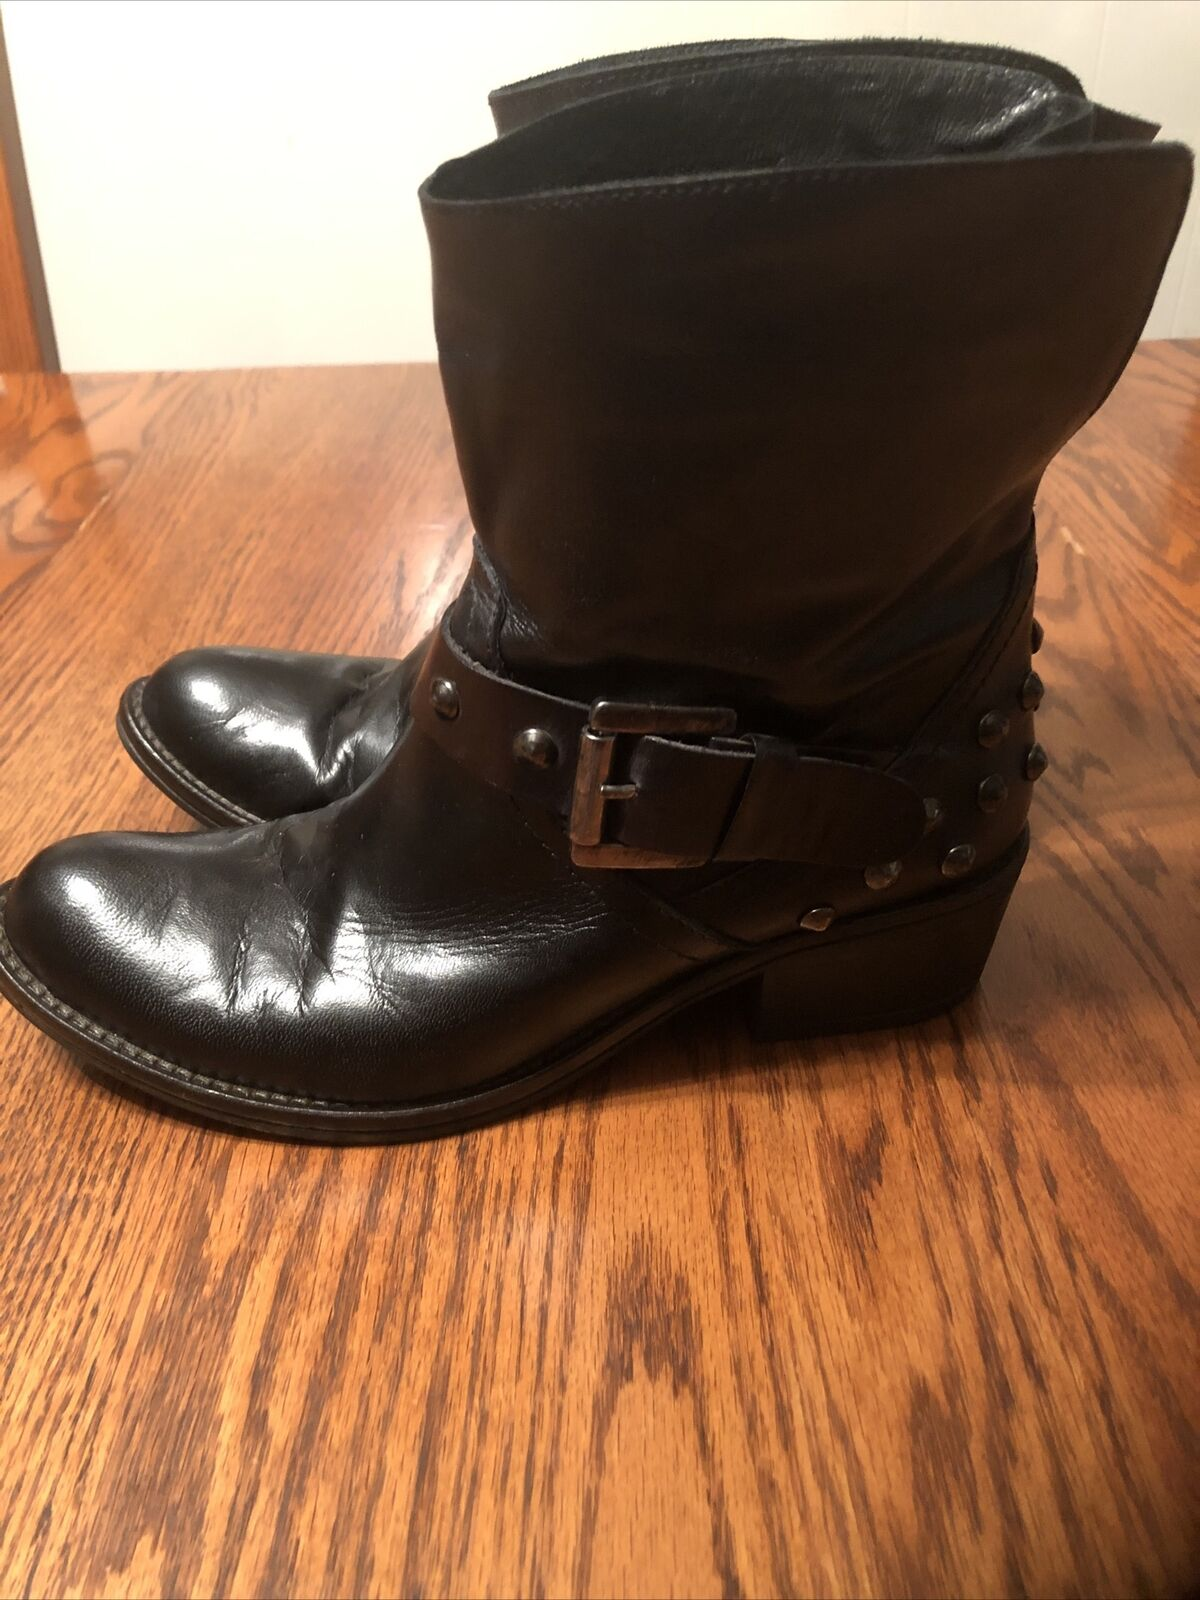 Peluso Italian leather ankle boots, stud accents womens 6.5